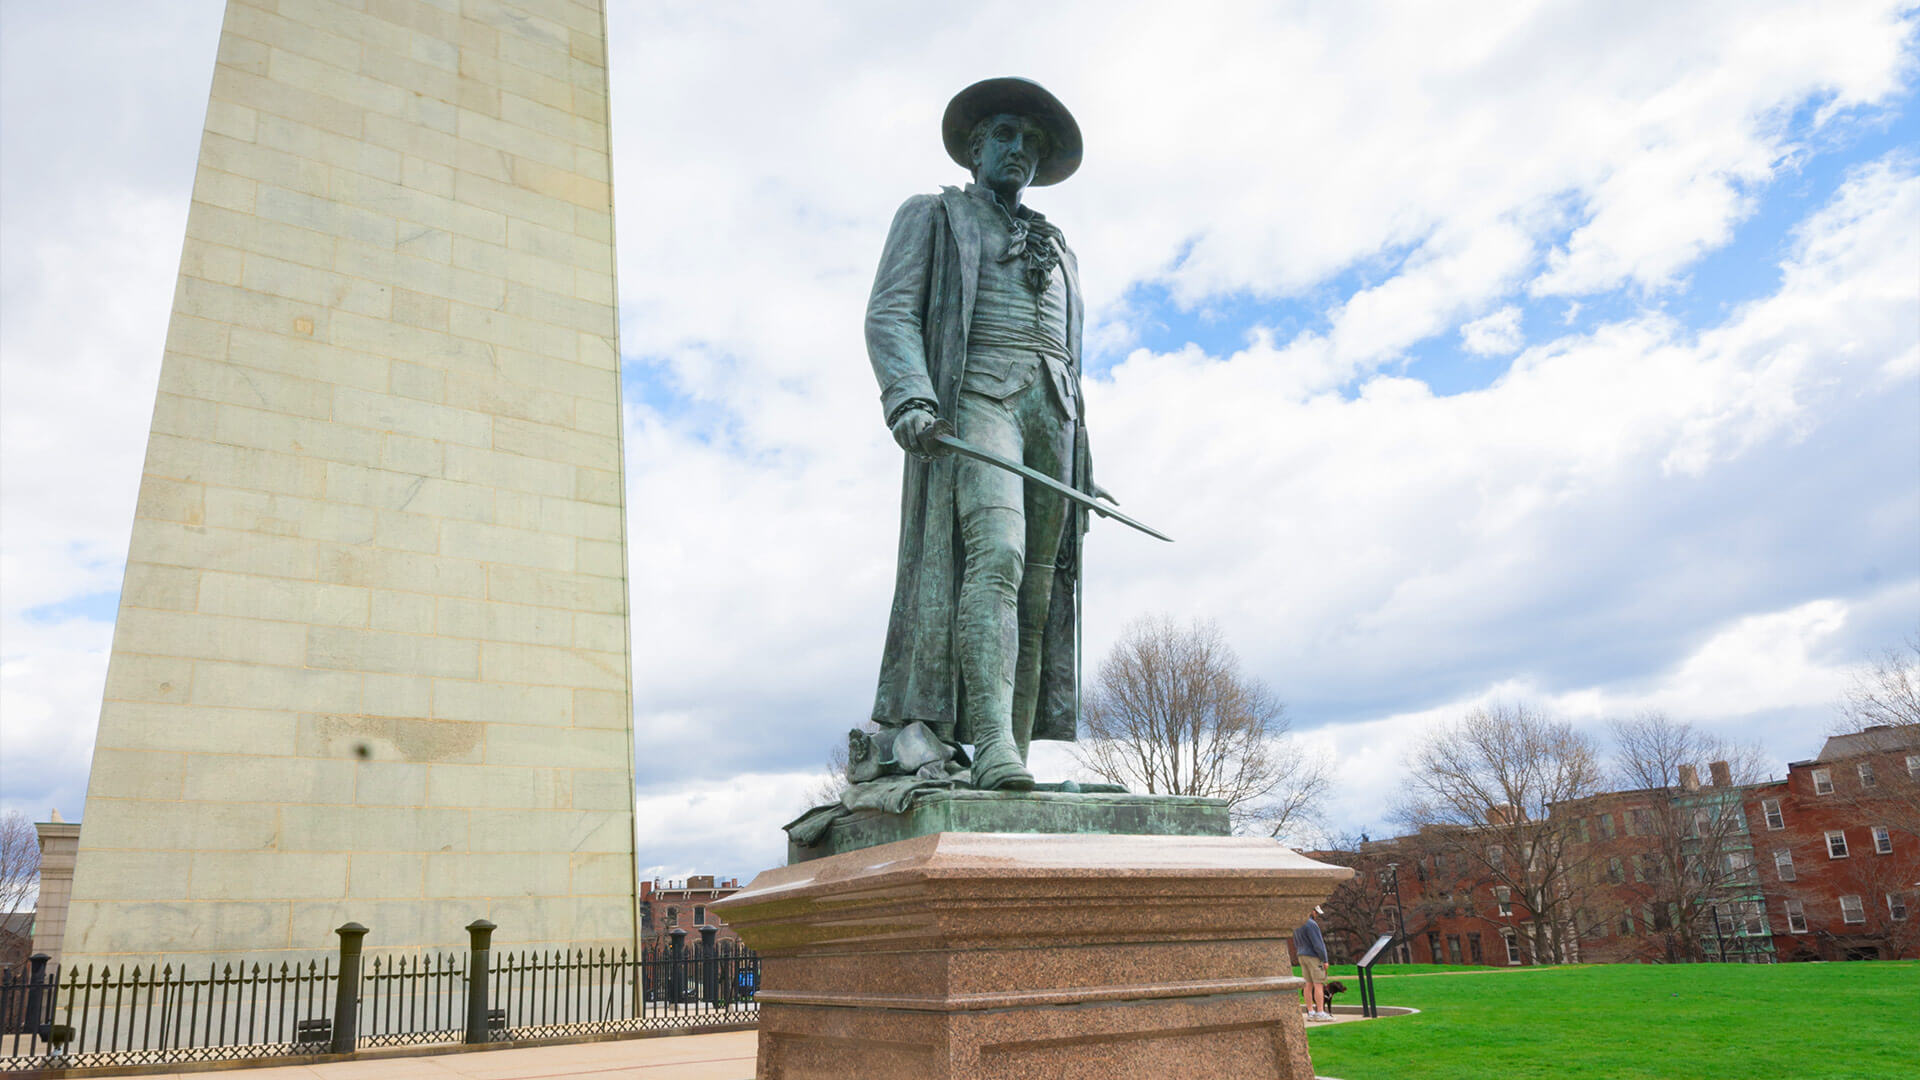 Statue of Col. William Prescott in Bunker Hill Monument in Boston